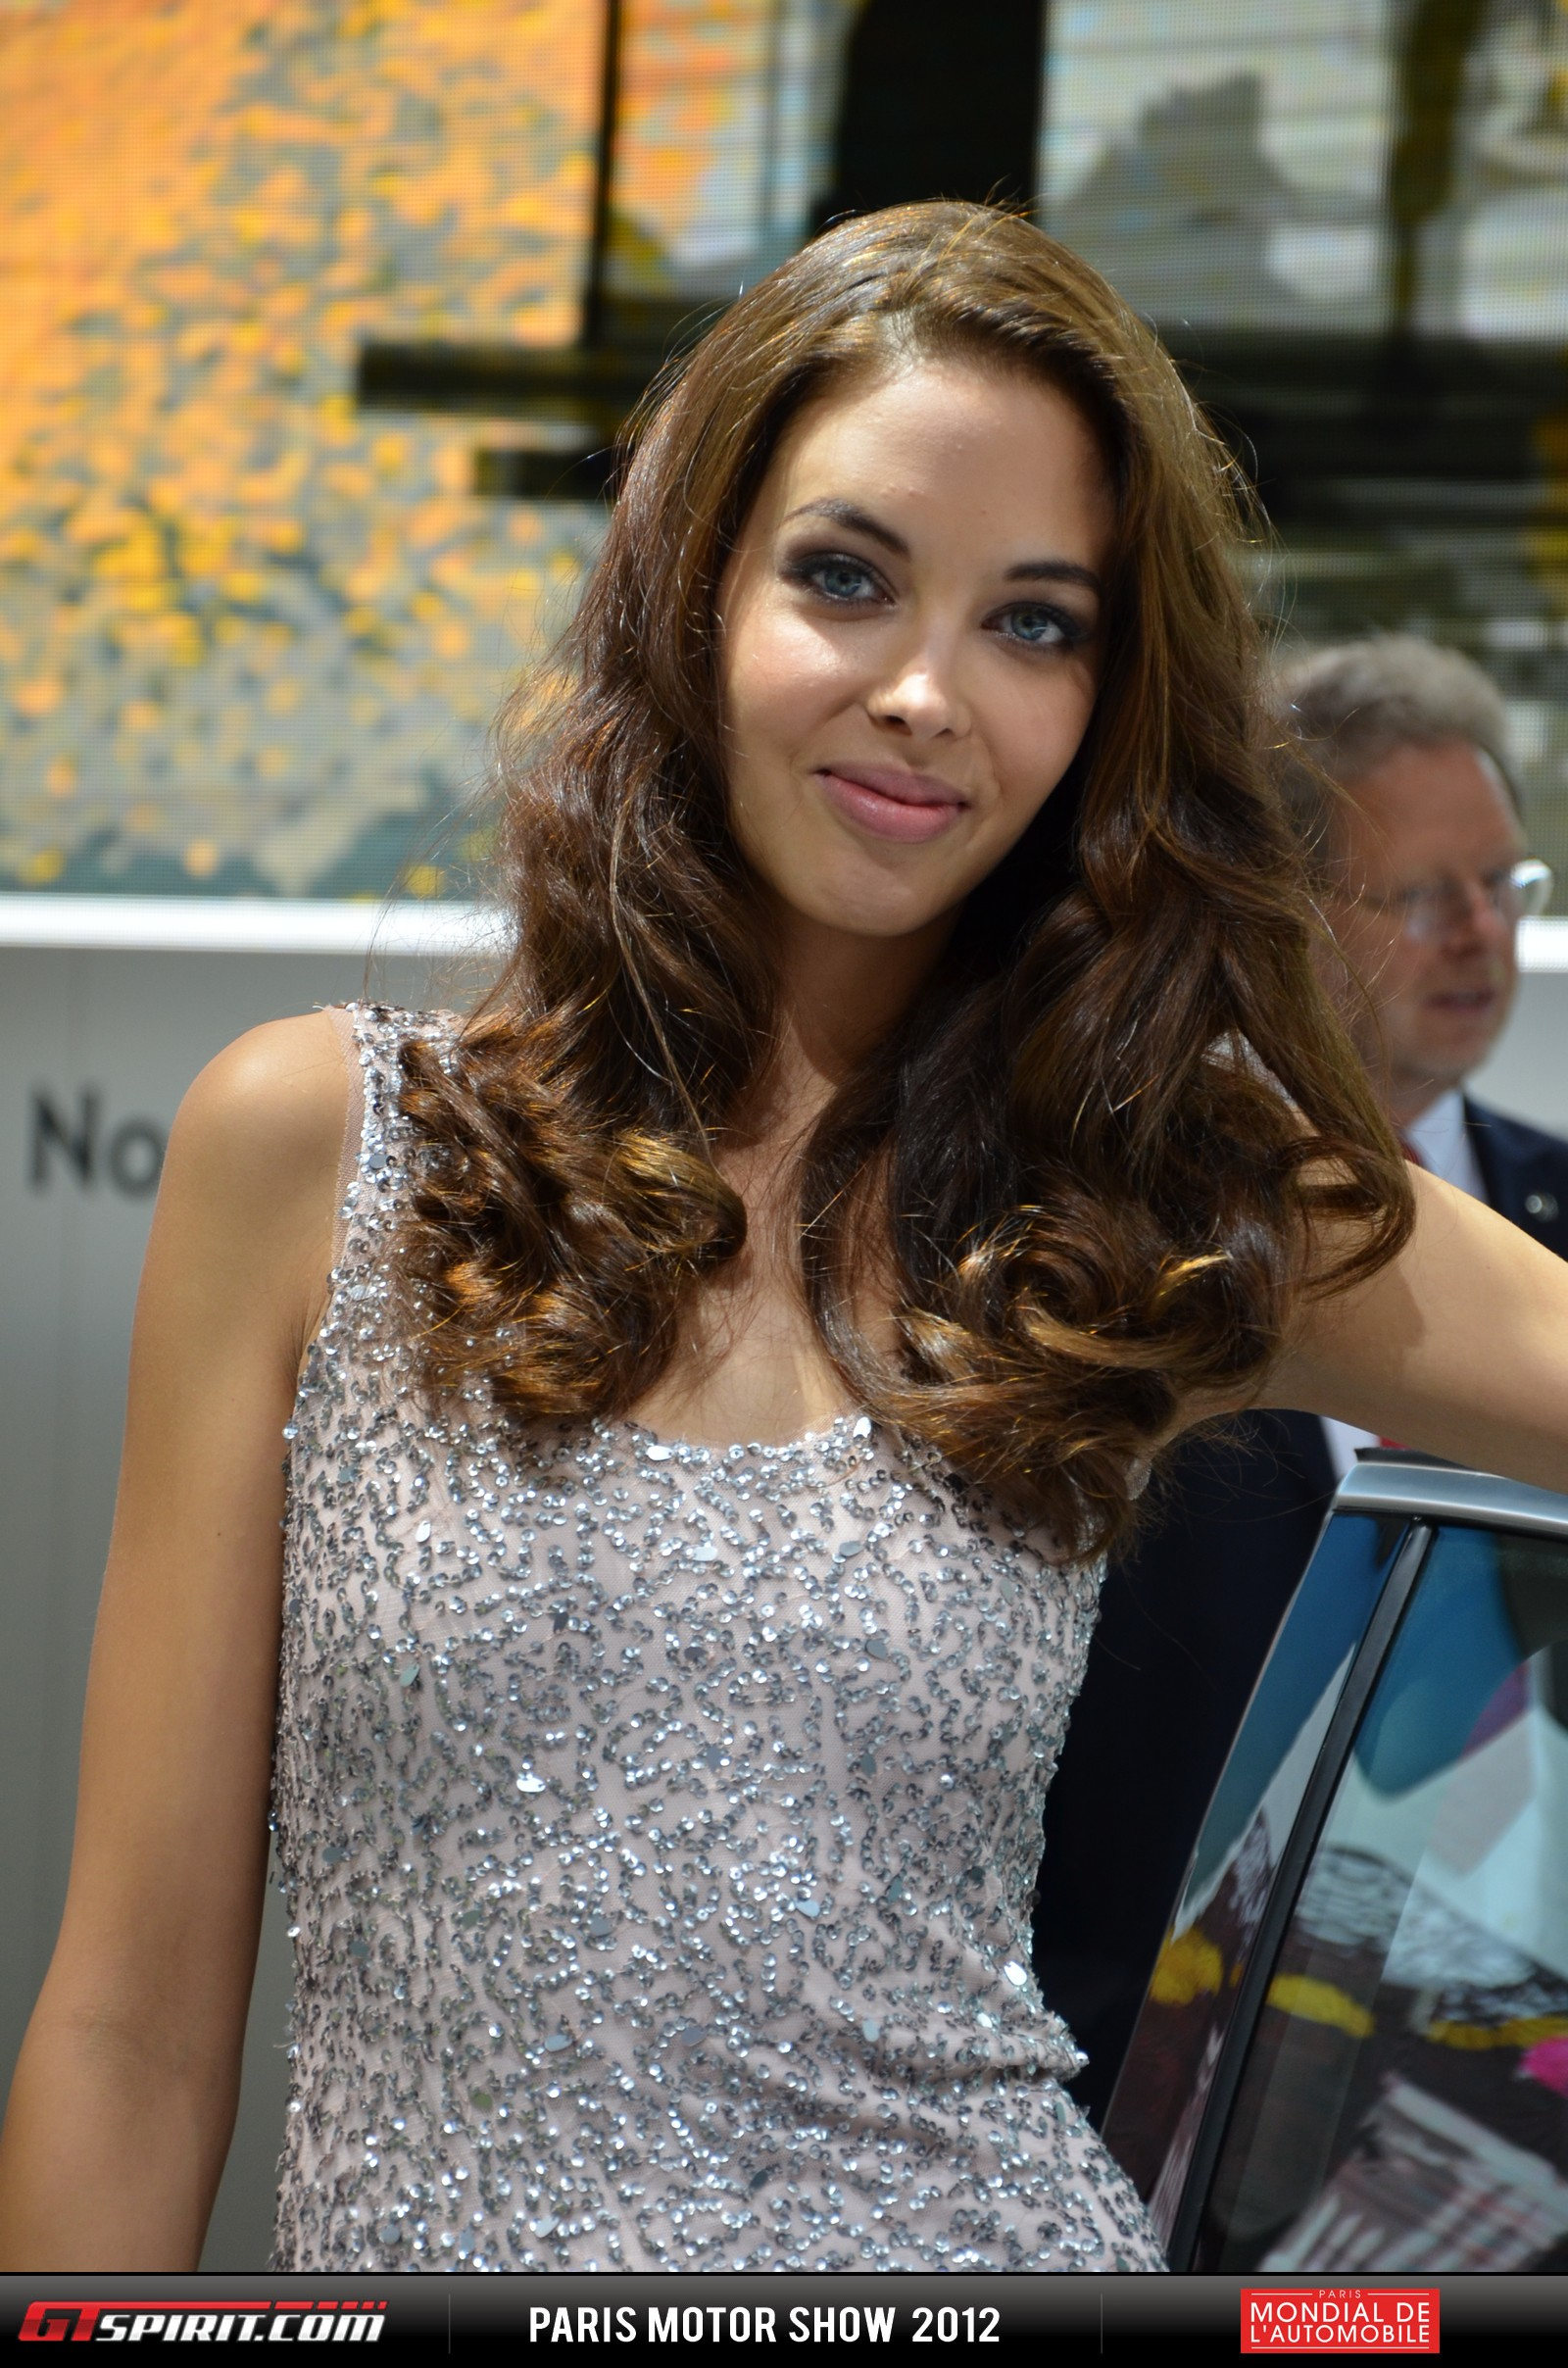 Girls at the Paris Motor Show 2012 Part 1 Photo 6